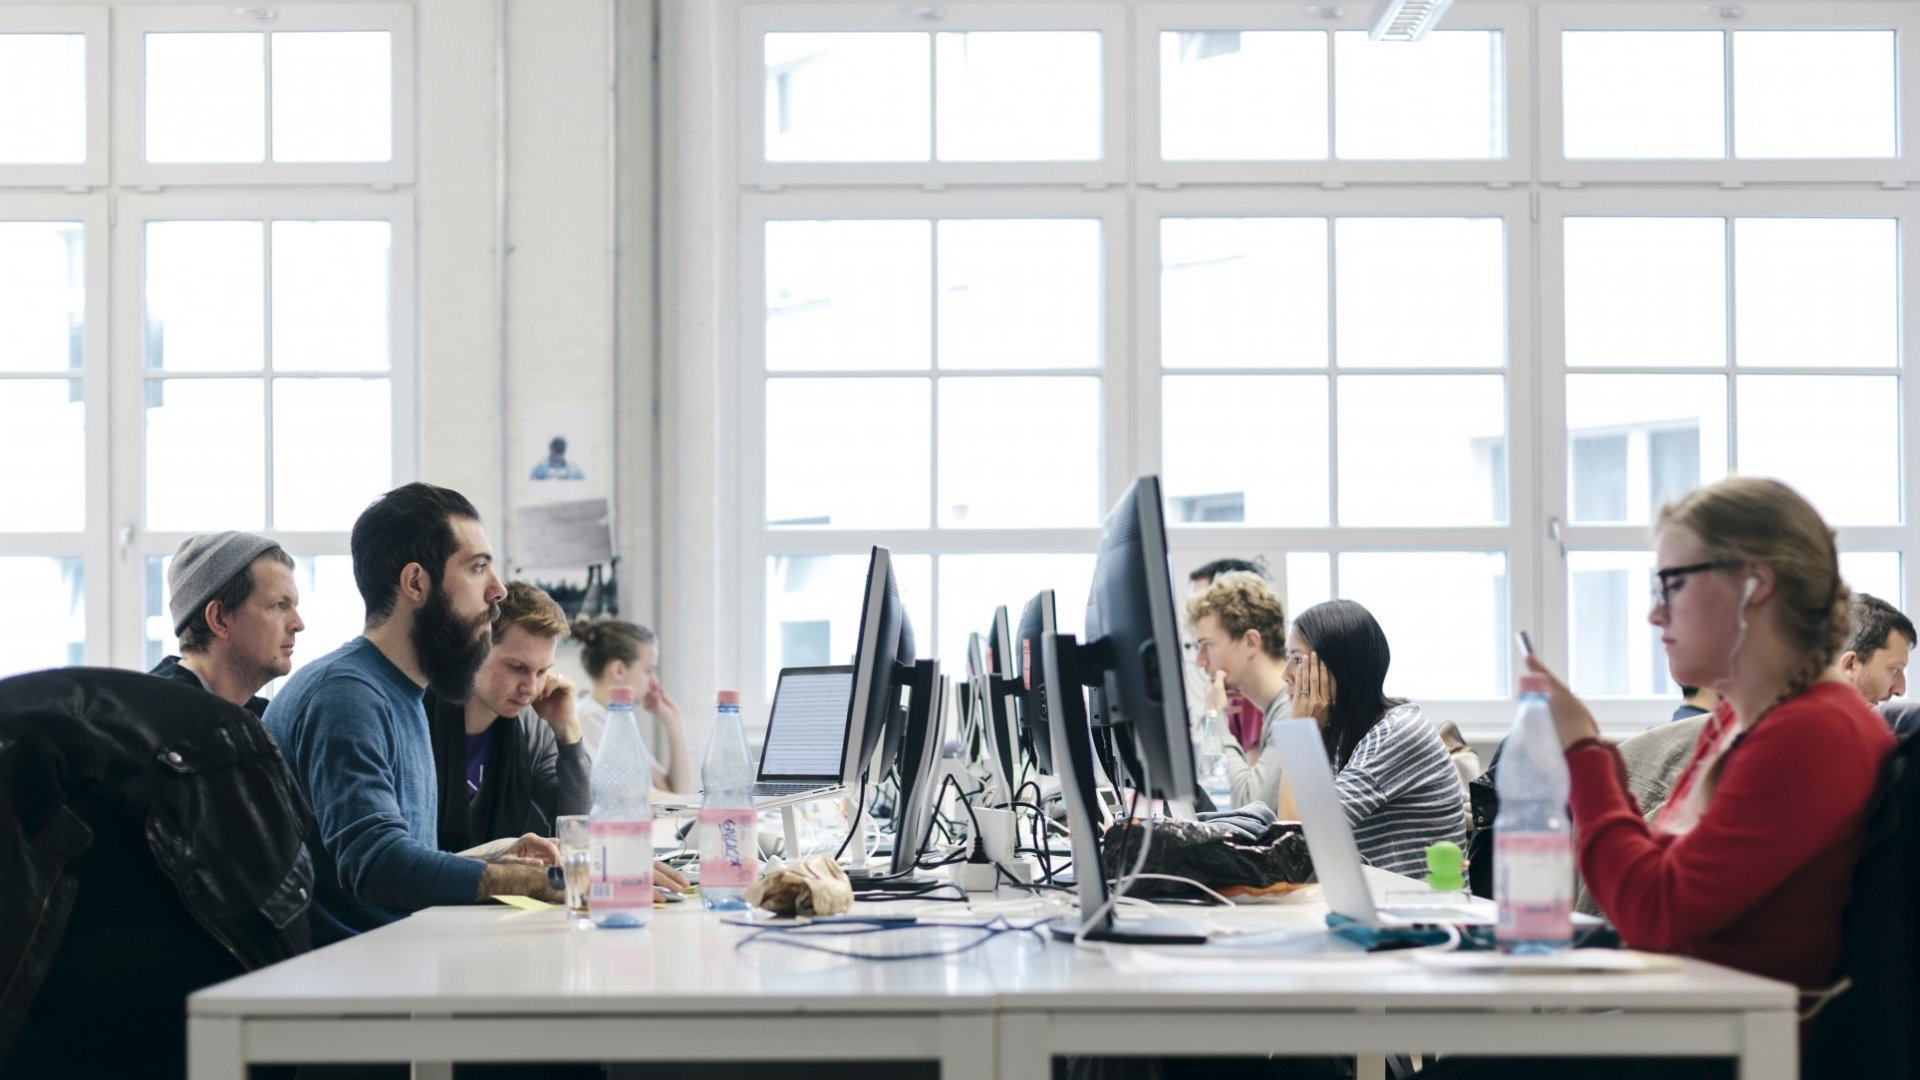 If You're Looking for a Startup Accelerator, Start With These 9